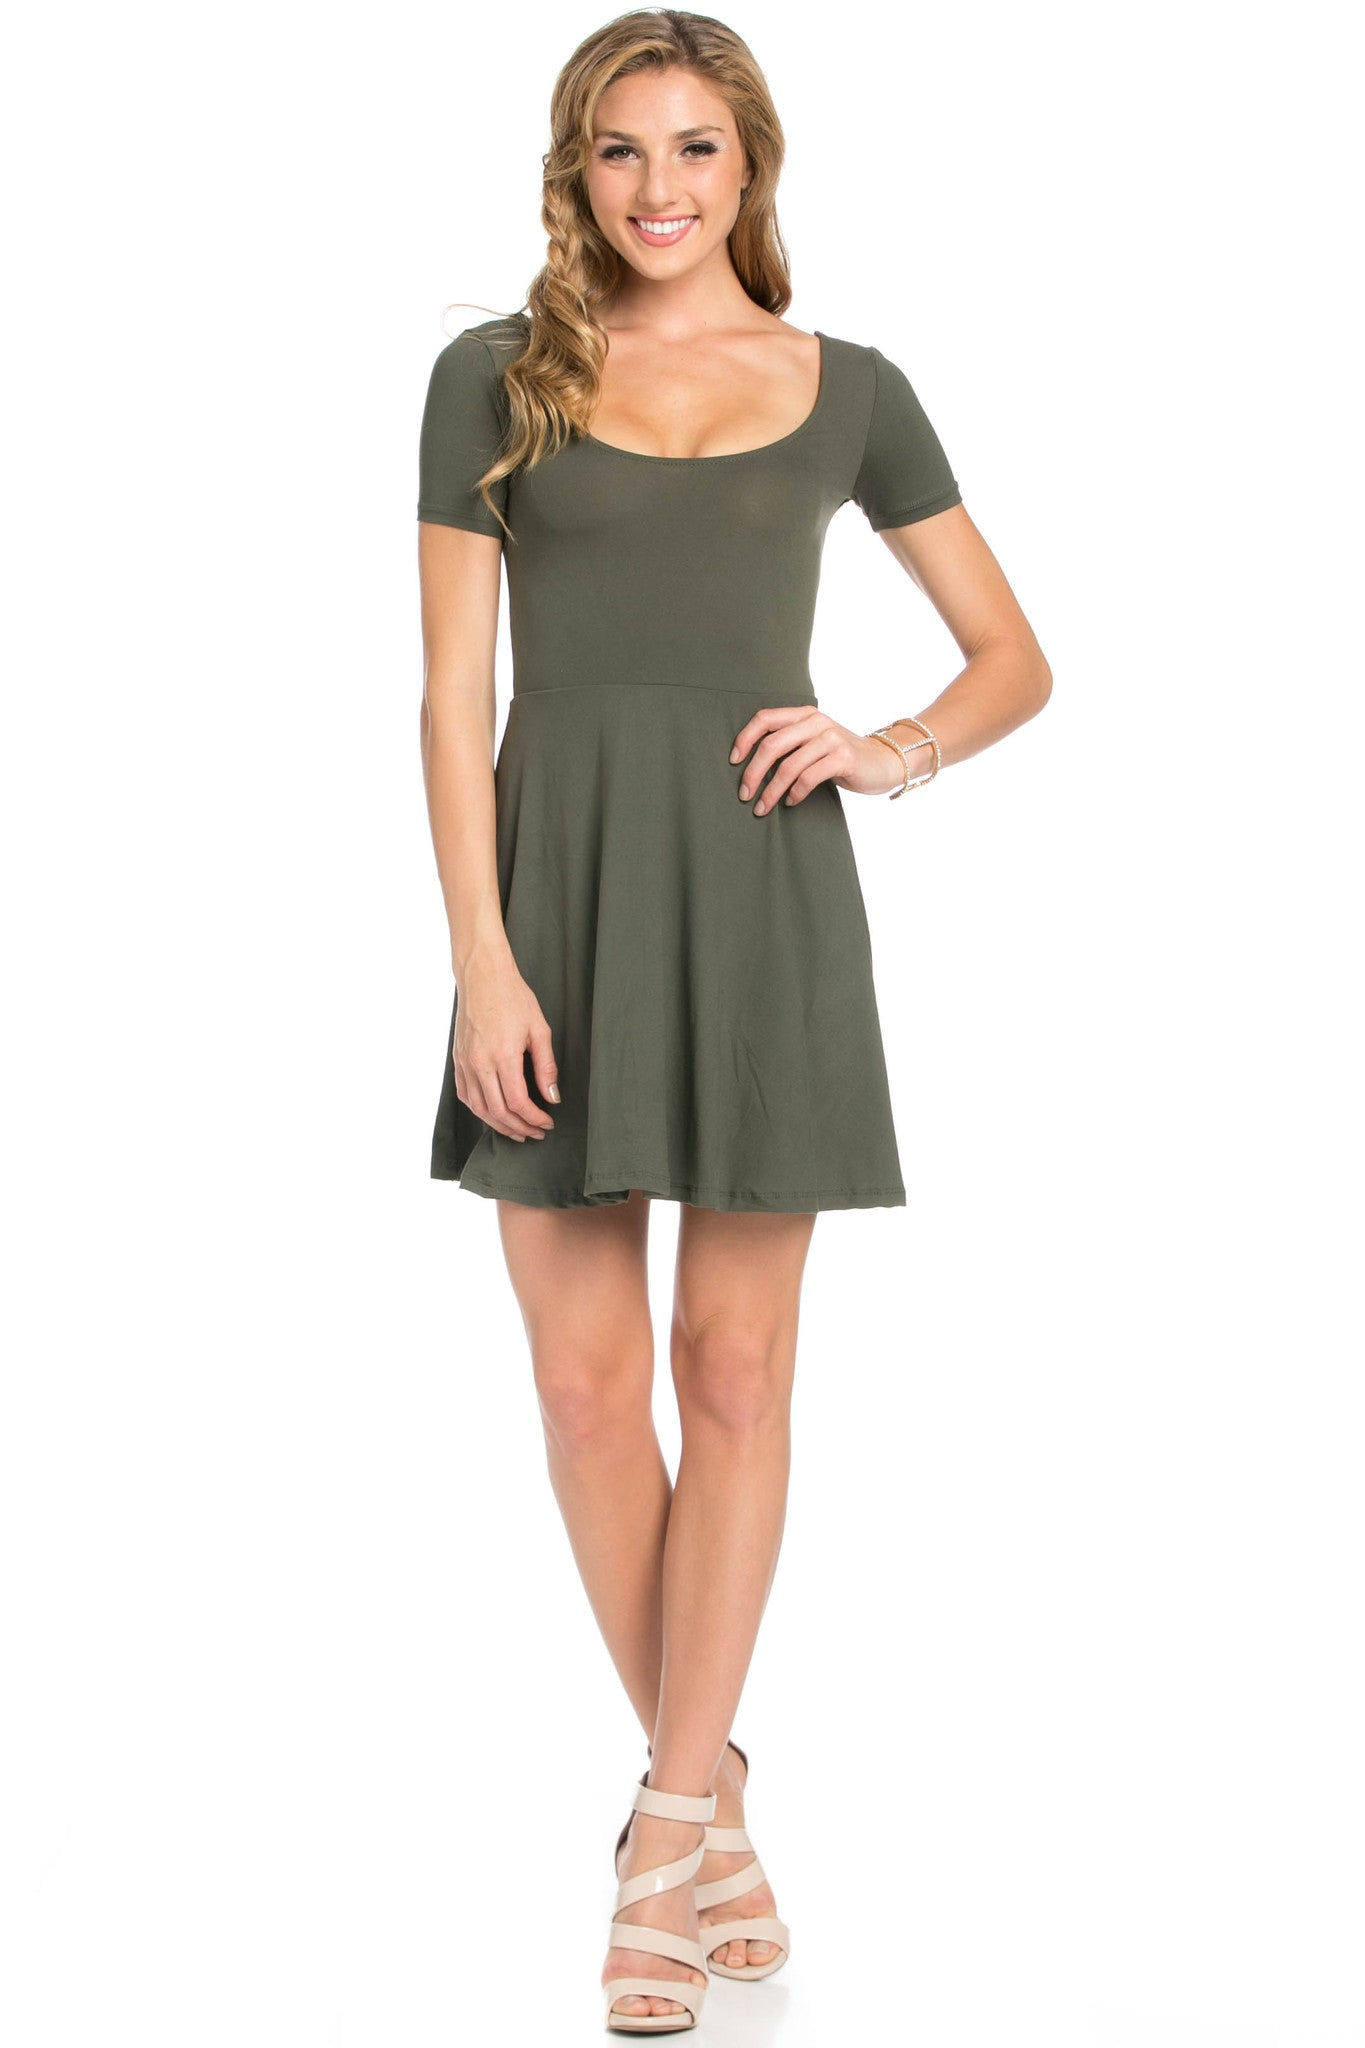 Micro Suede Olive Mini Dress - Dresses - My Yuccie - 5